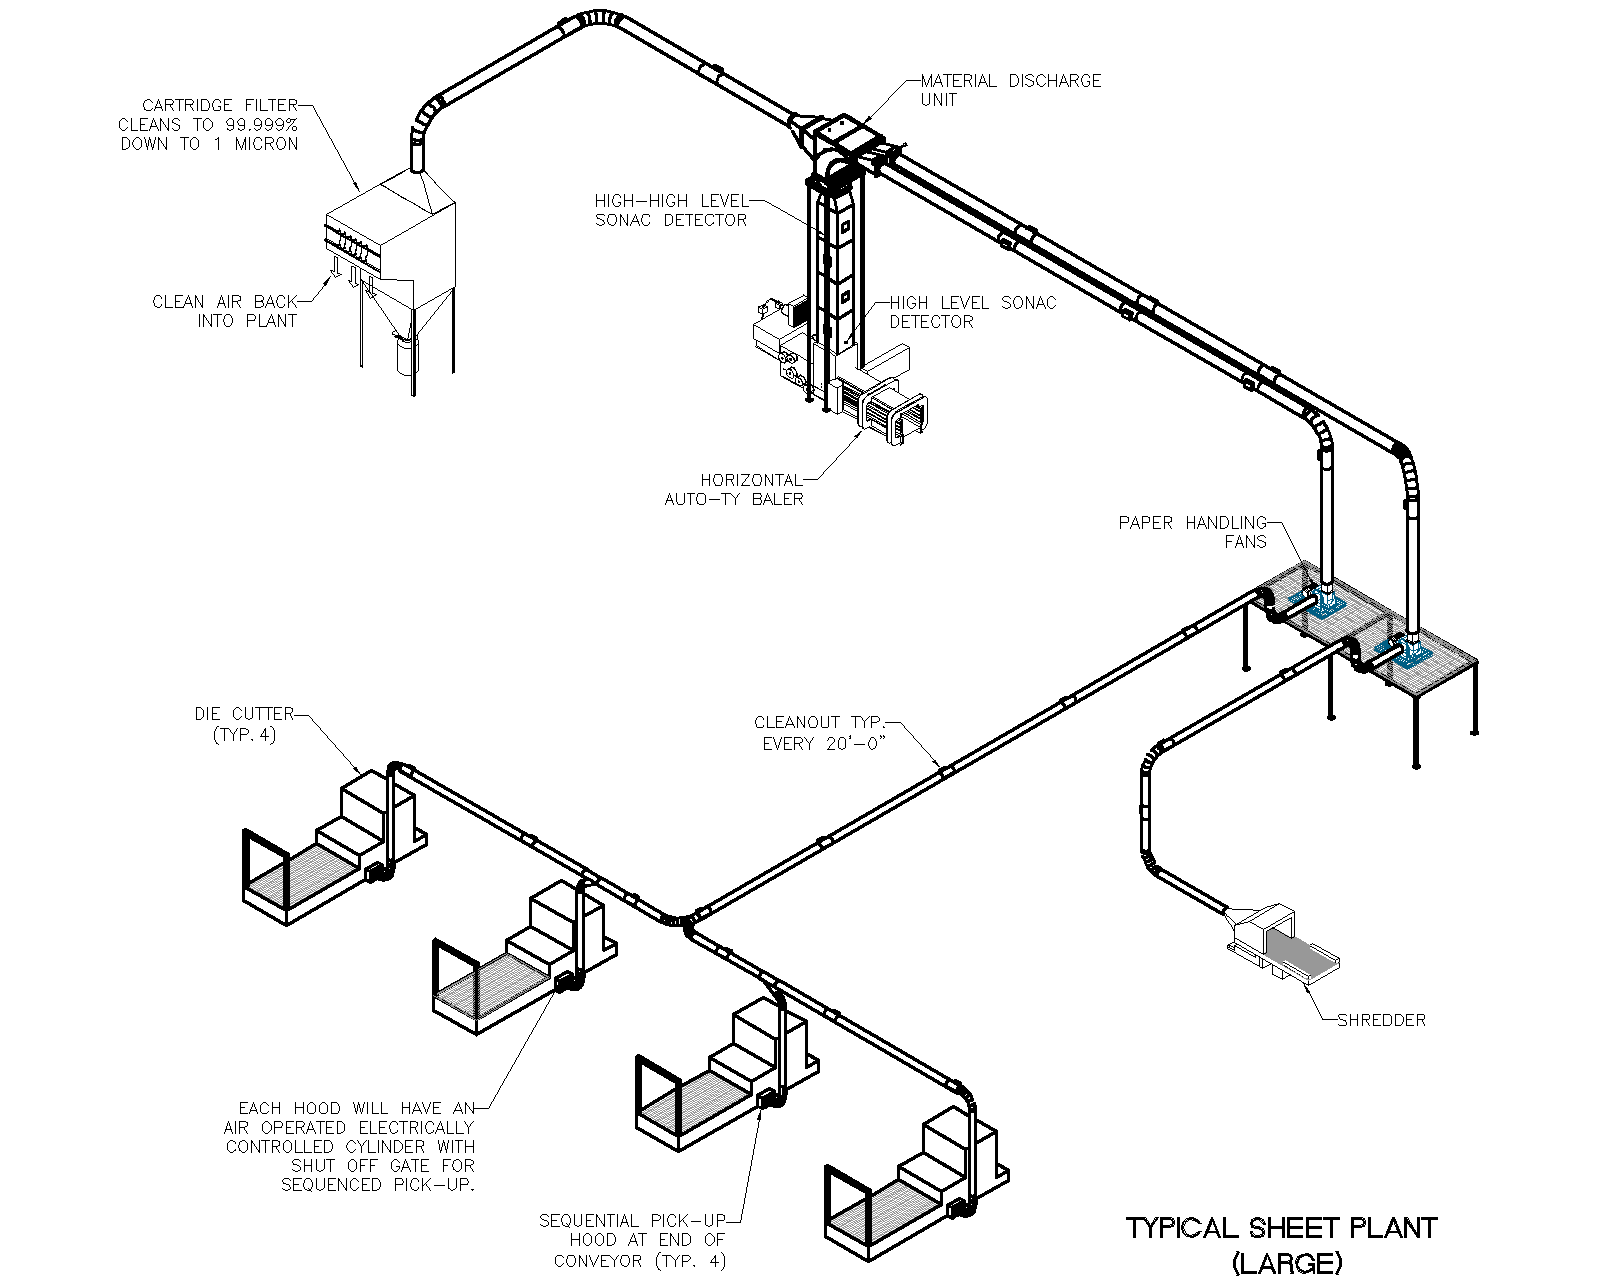 Typical-Sheet Plant Large Iso by Air Systems Design for the most efficient pneumatic conveying systems.